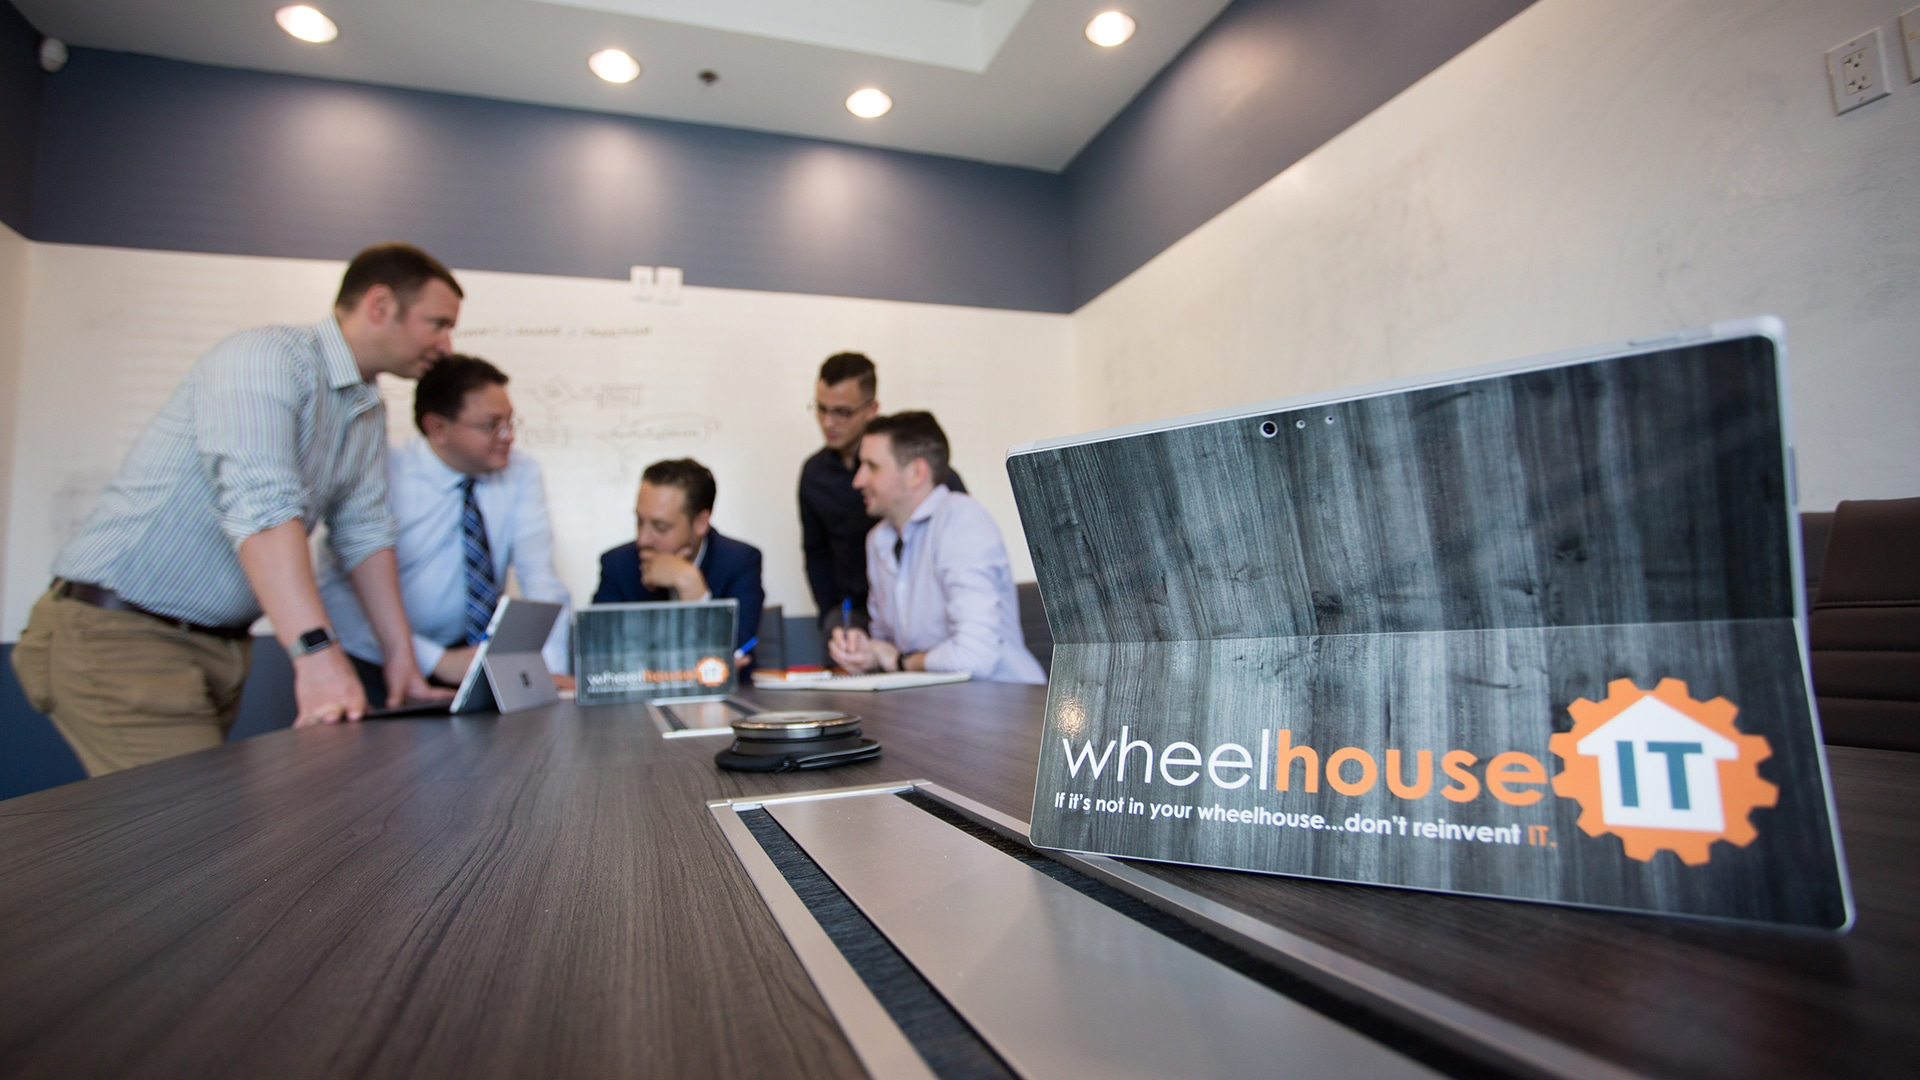 Contact WheelHouse IT for IT Support Near You